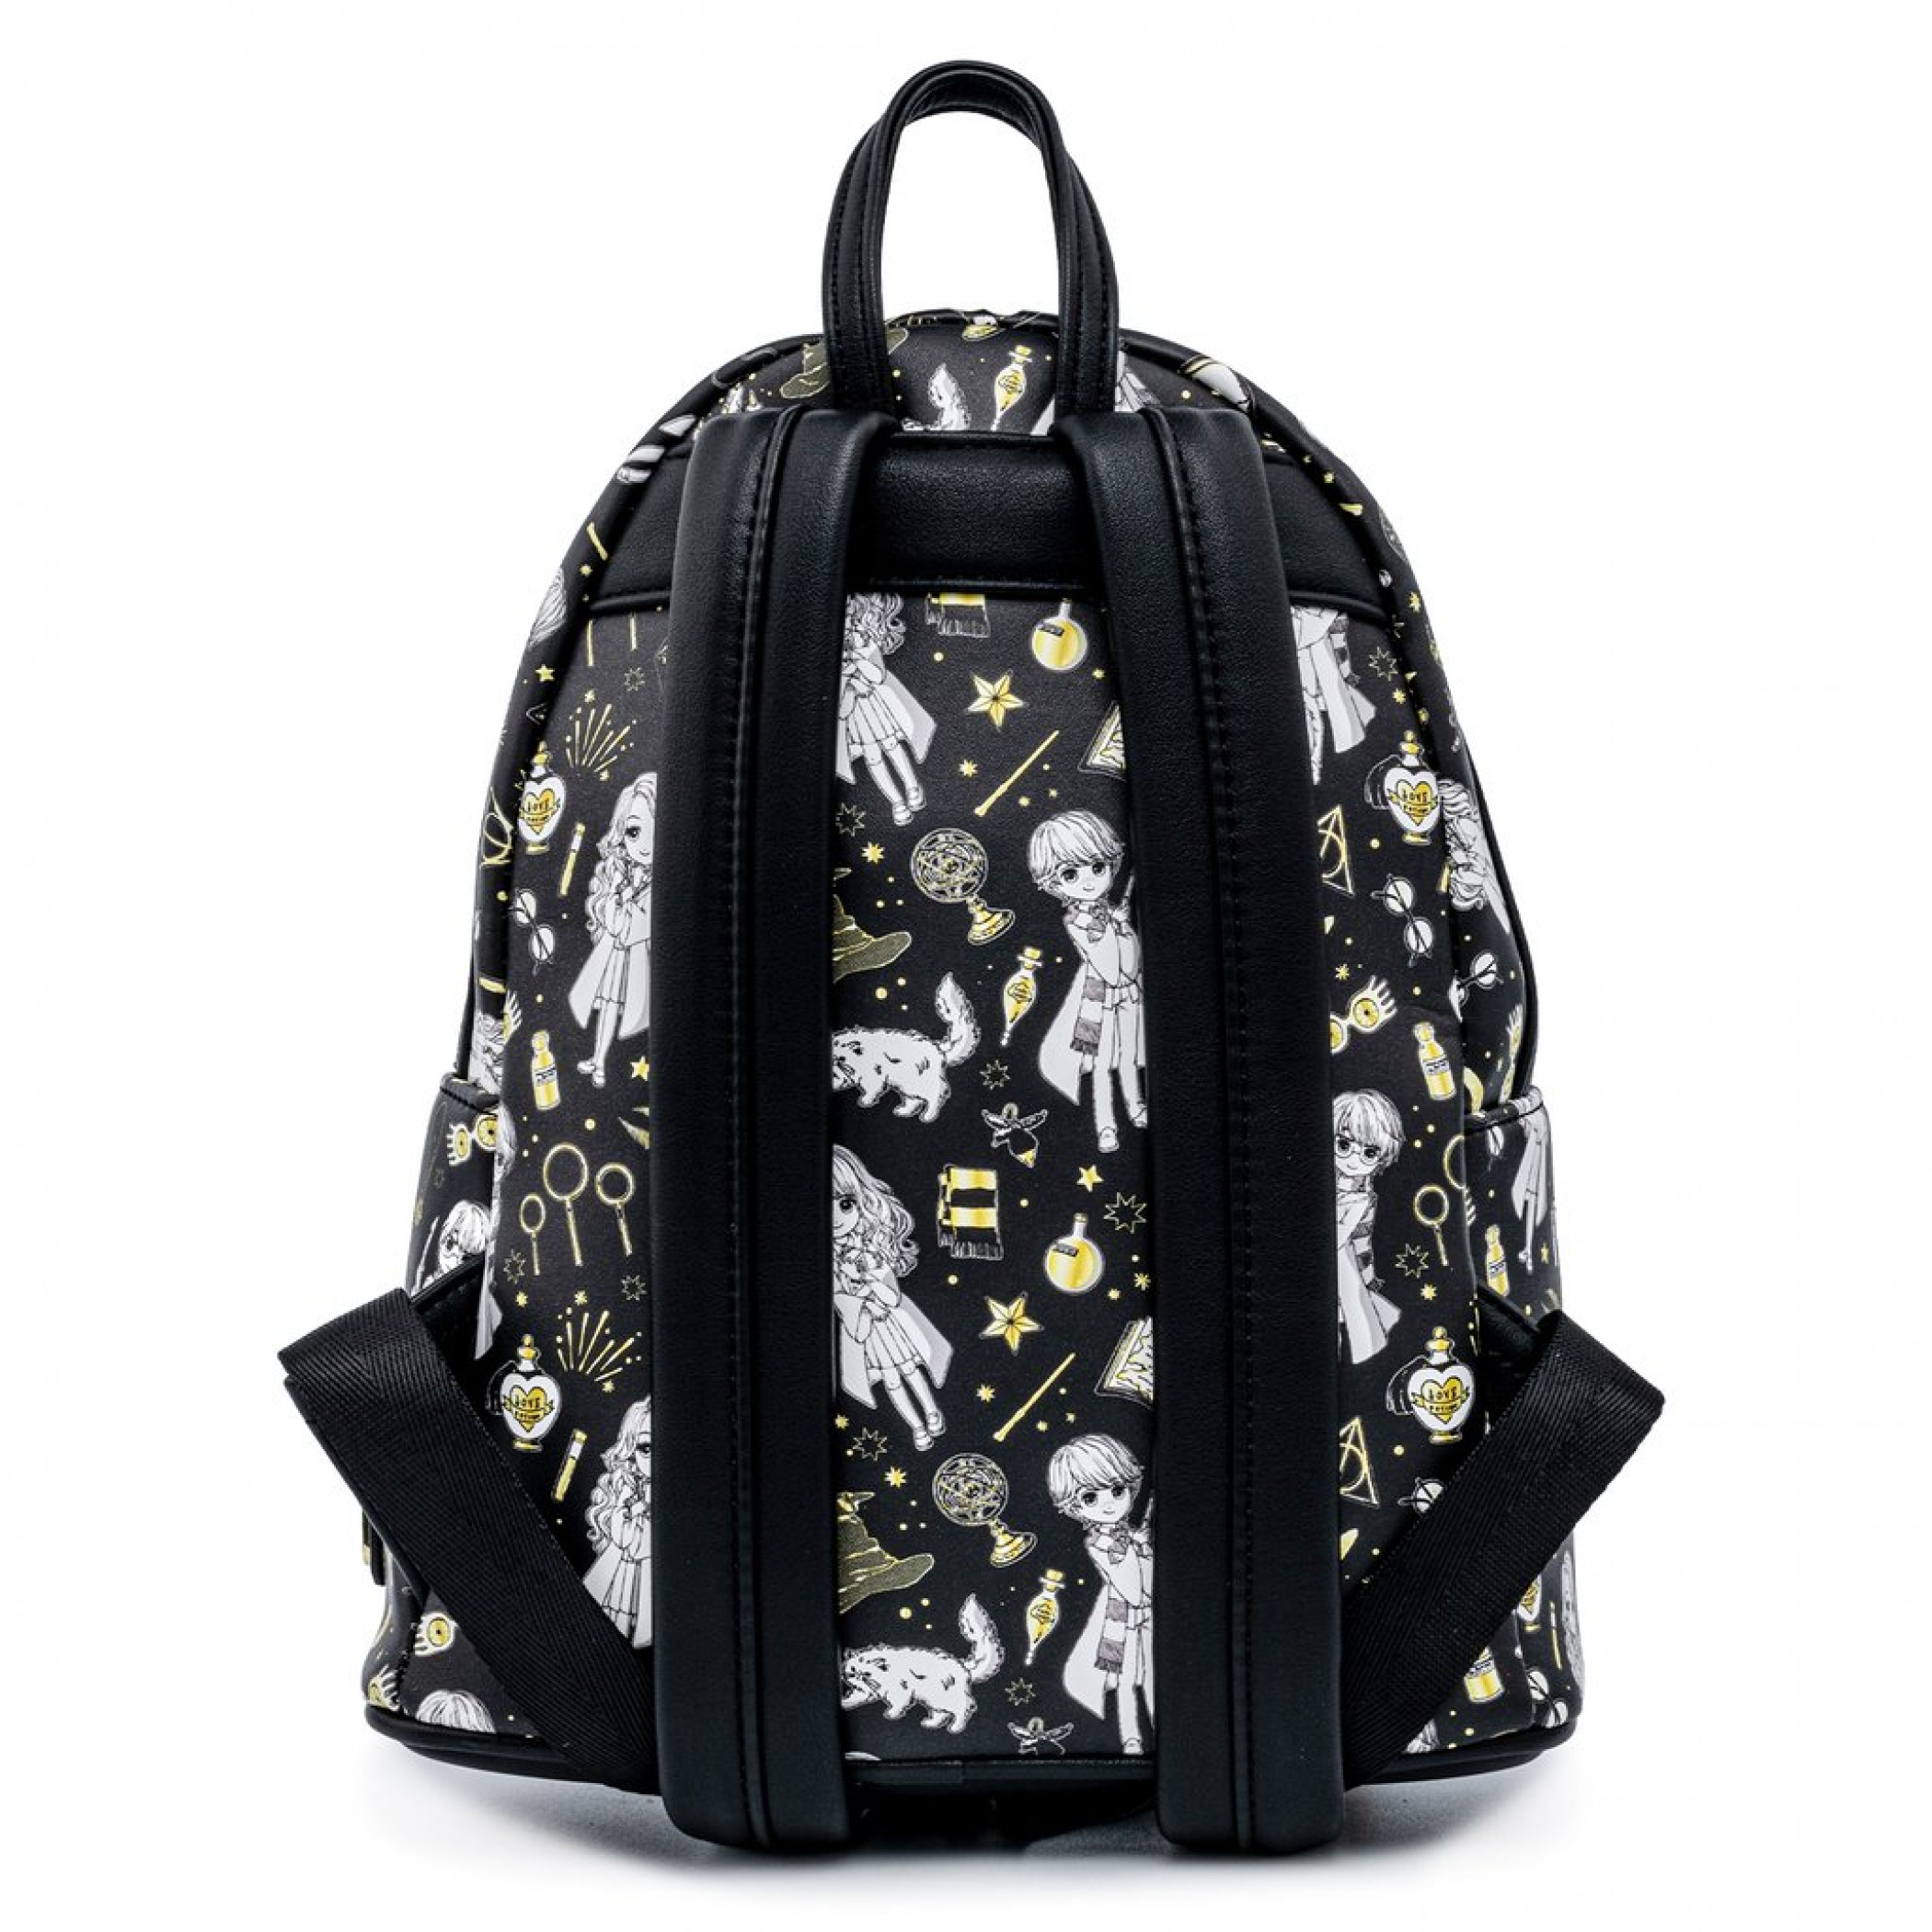 Harry Potter Magical Elements All Over Mini Backpack by Loungefly